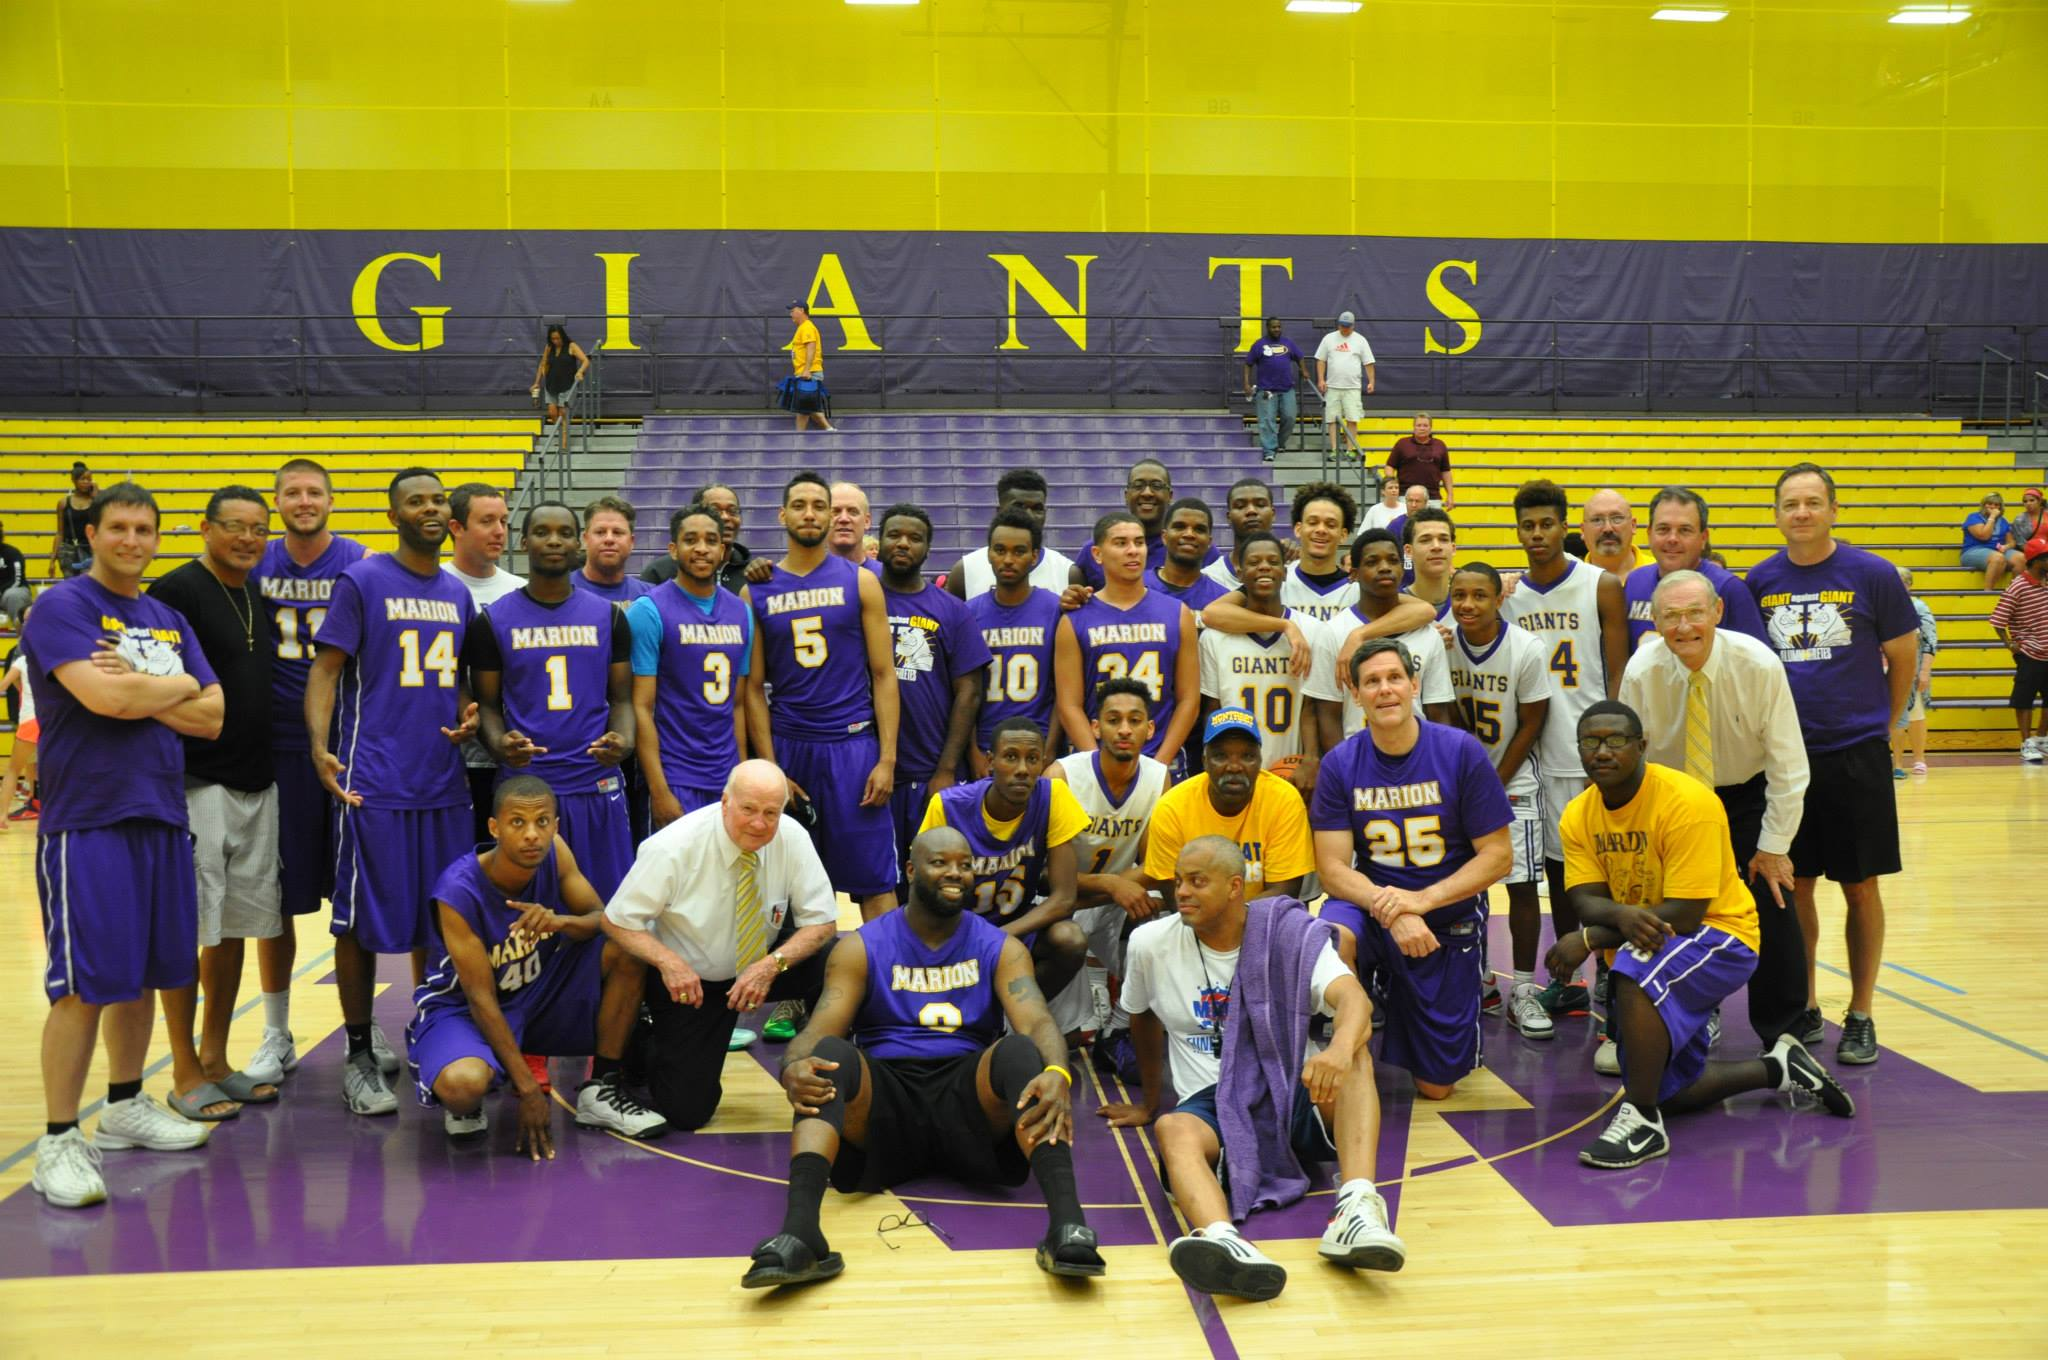 Giant Challenge 2015 boys basketball teams